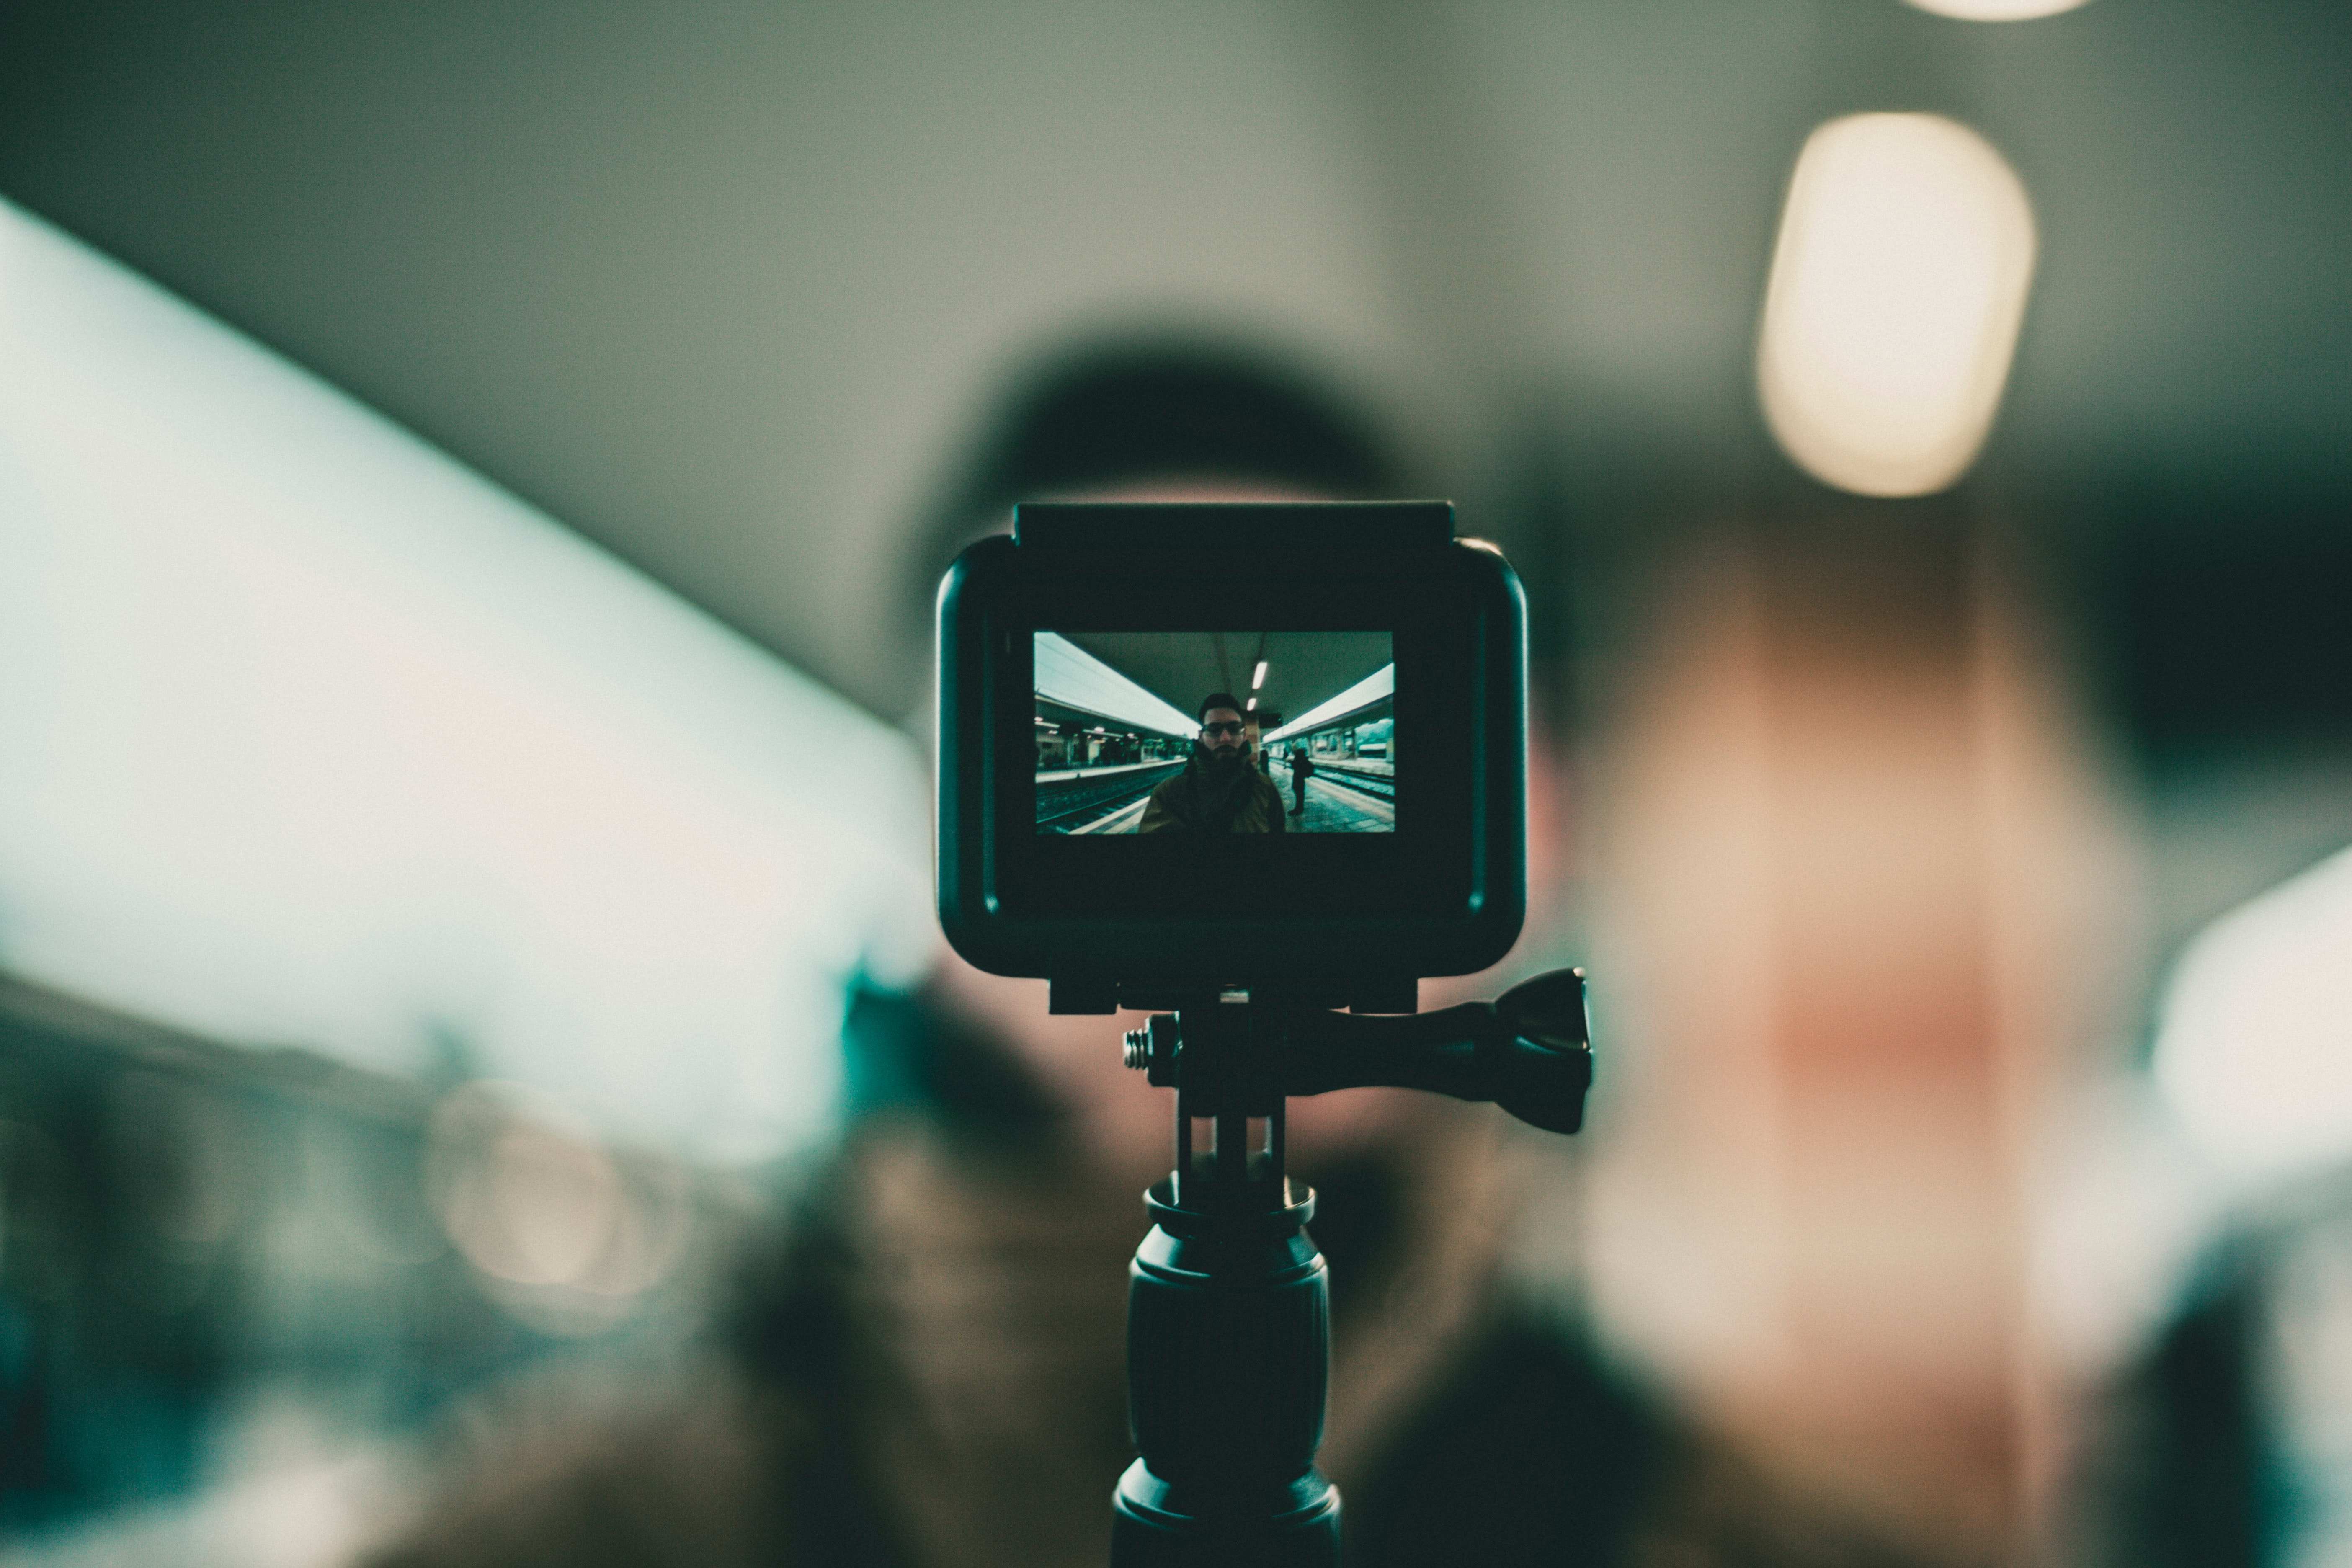 gopro for live streaming sporting events